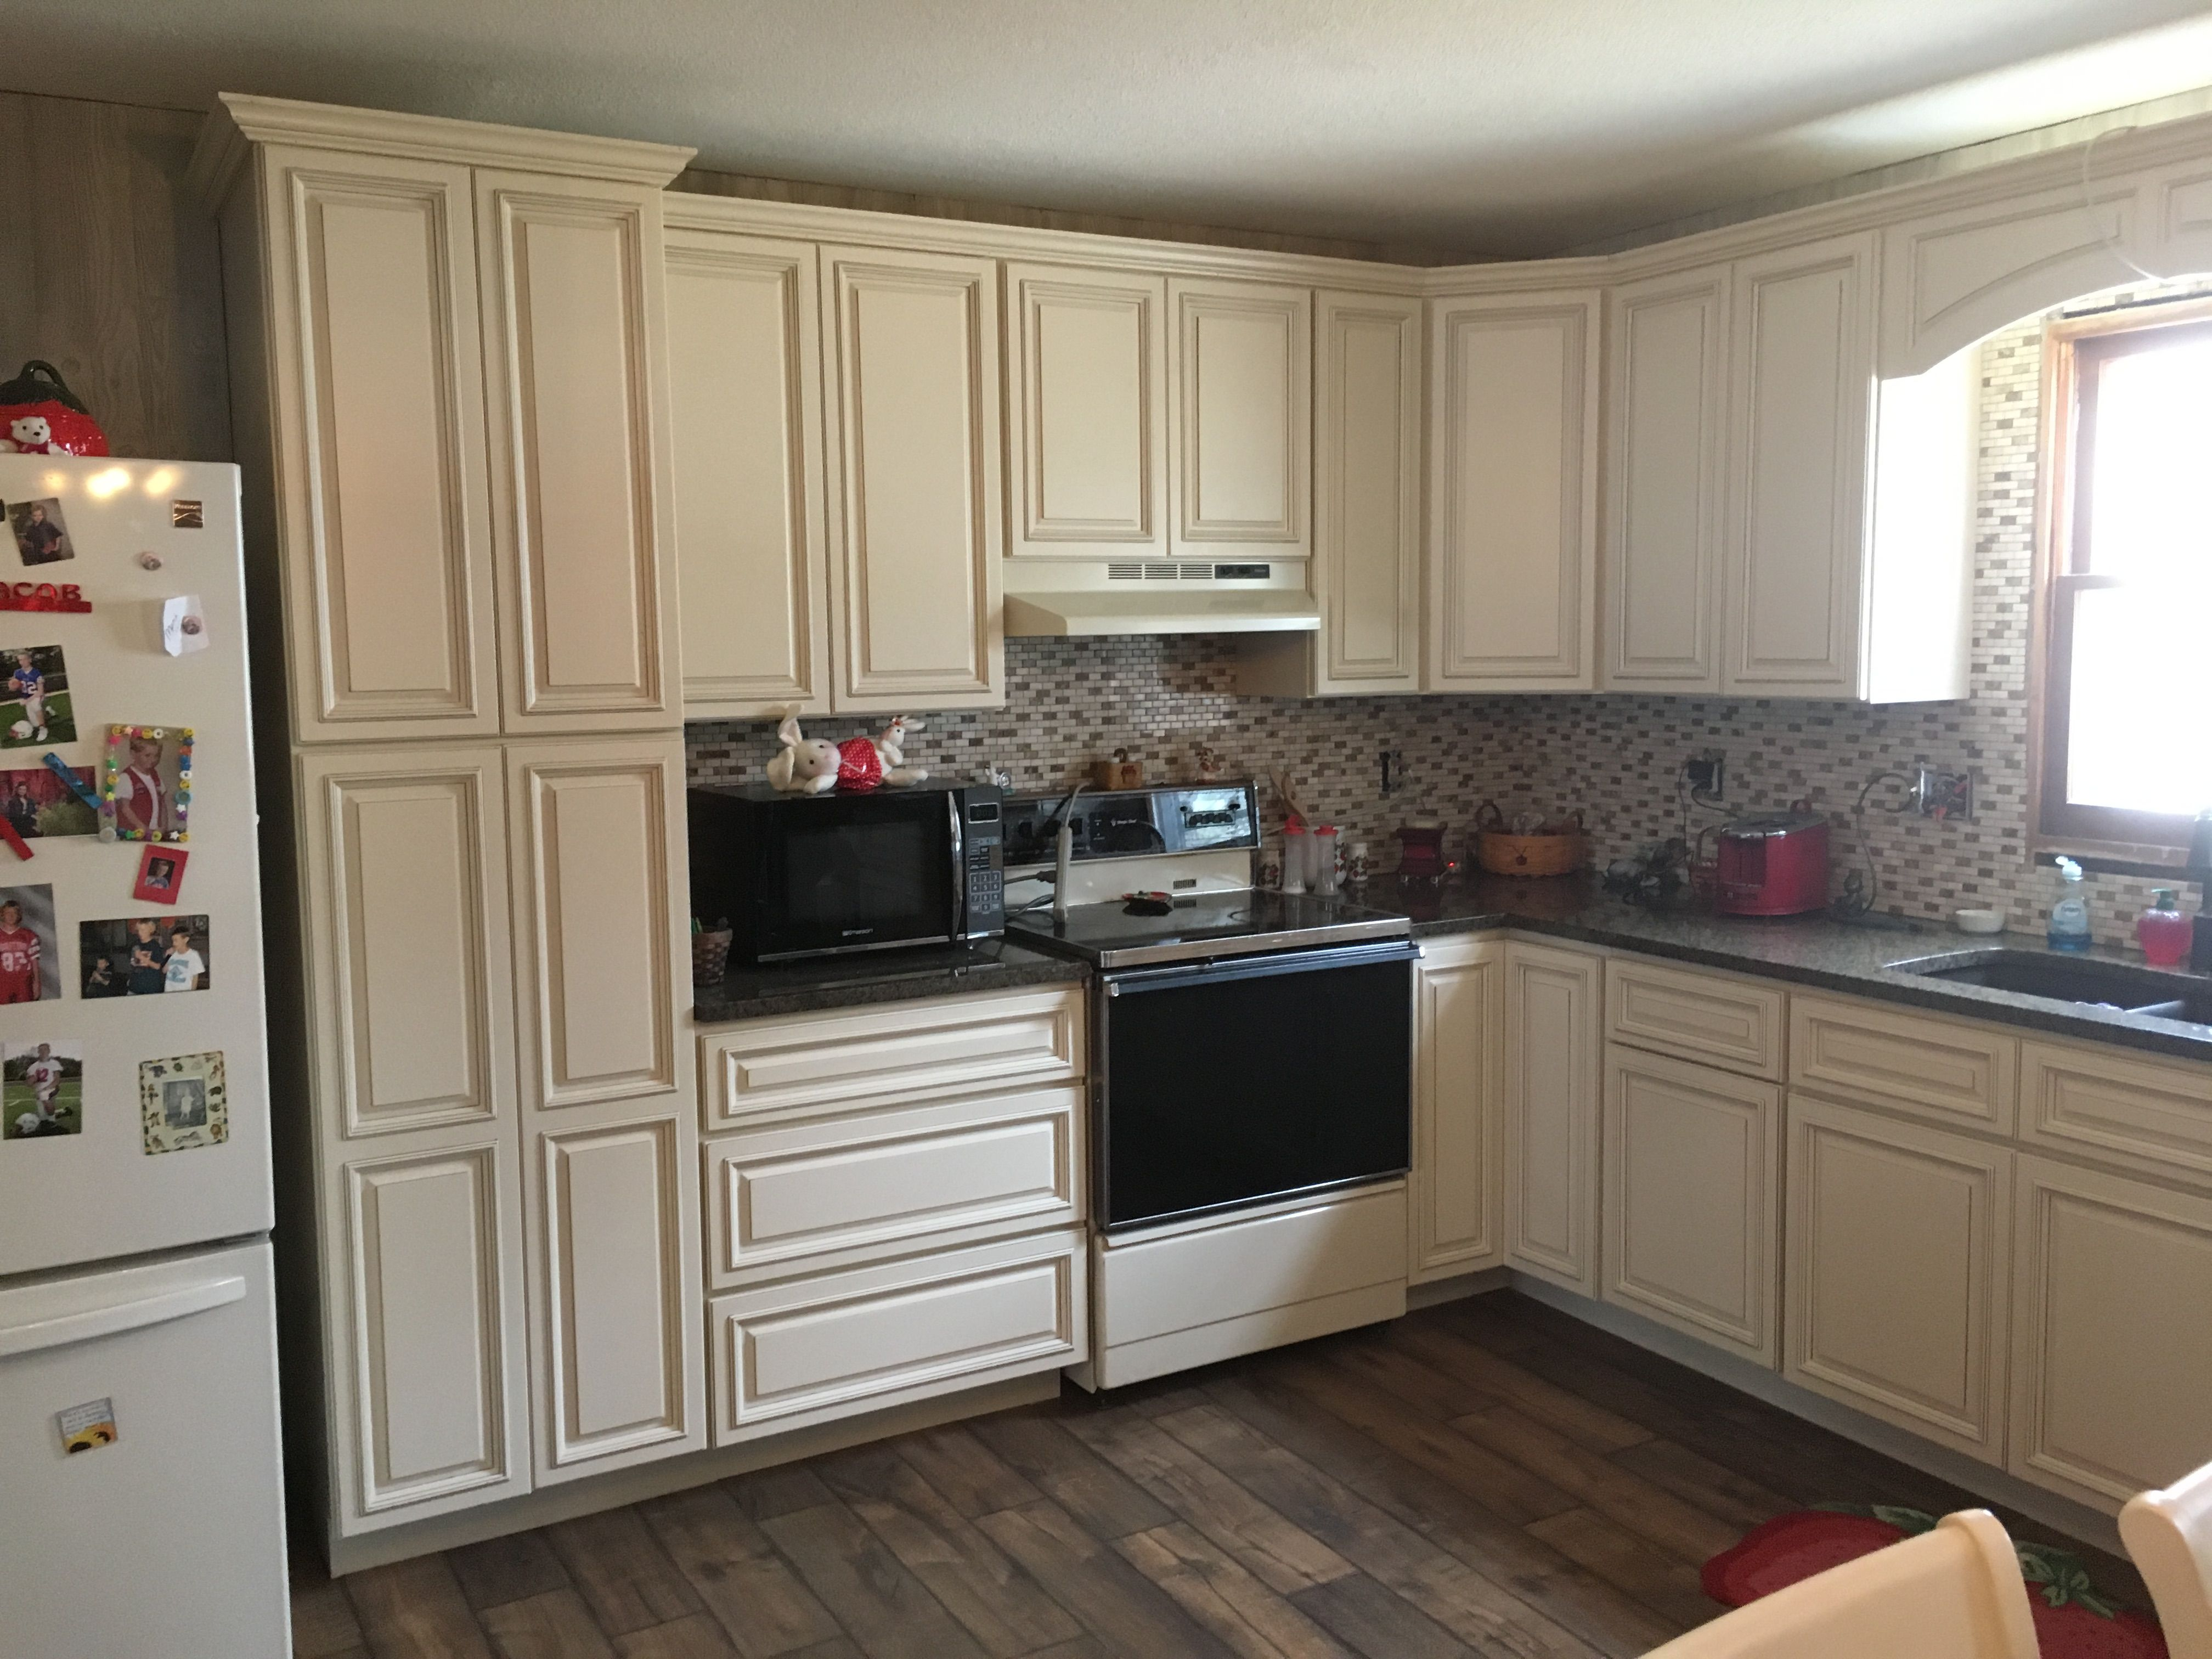 Yikes A Fire Gutted This Kitchen Owner Chose Monroe Cream All Wood Cabinets To Re Do Her Kitchen Premi Semi Custom Cabinets Wood Cabinets Kitchen Cabinetry